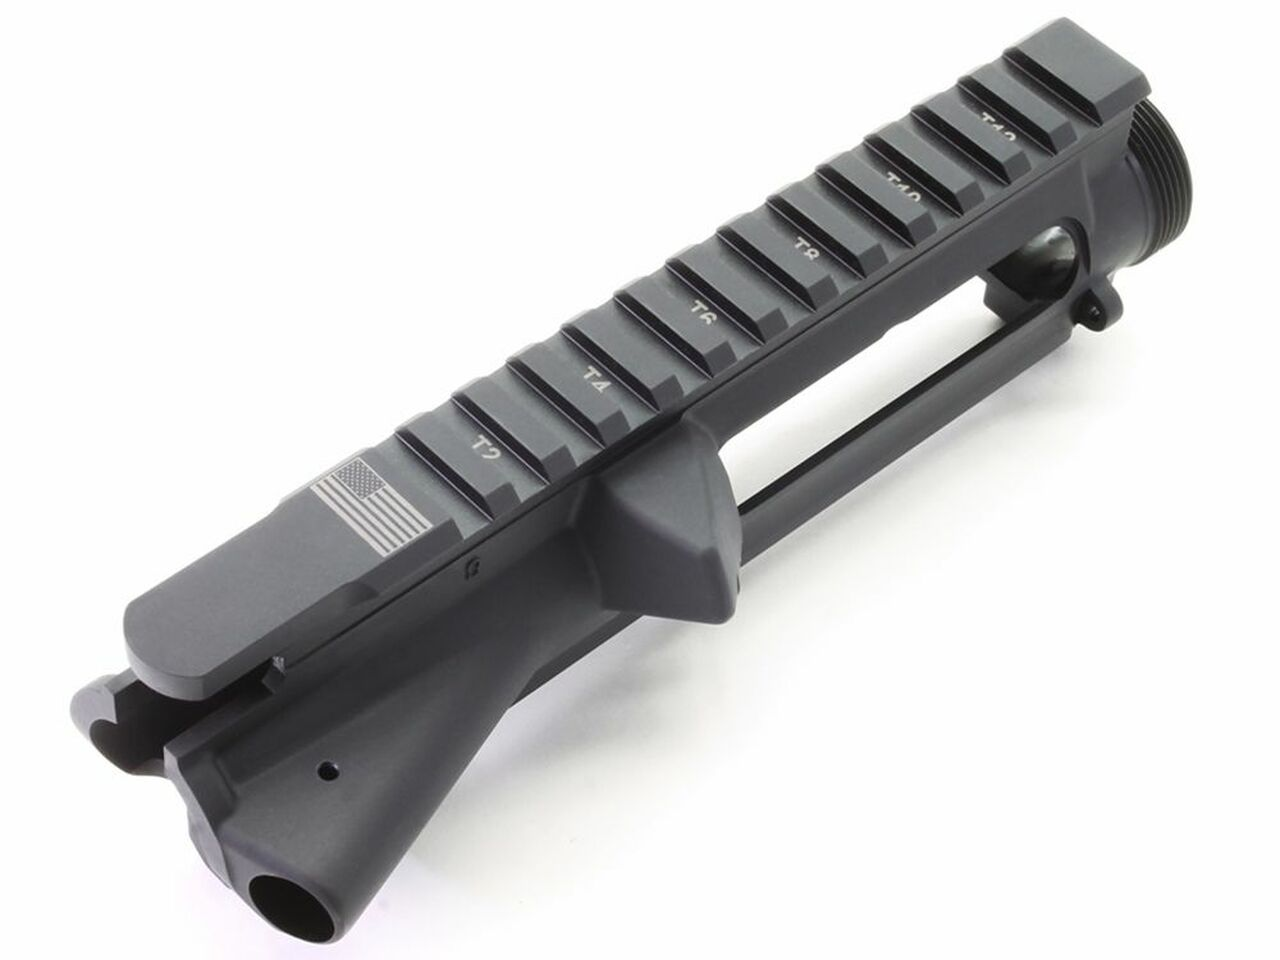 SAA Forged AR15 Stripped Flat Top Upper Receiver - T-Marked & US Flag